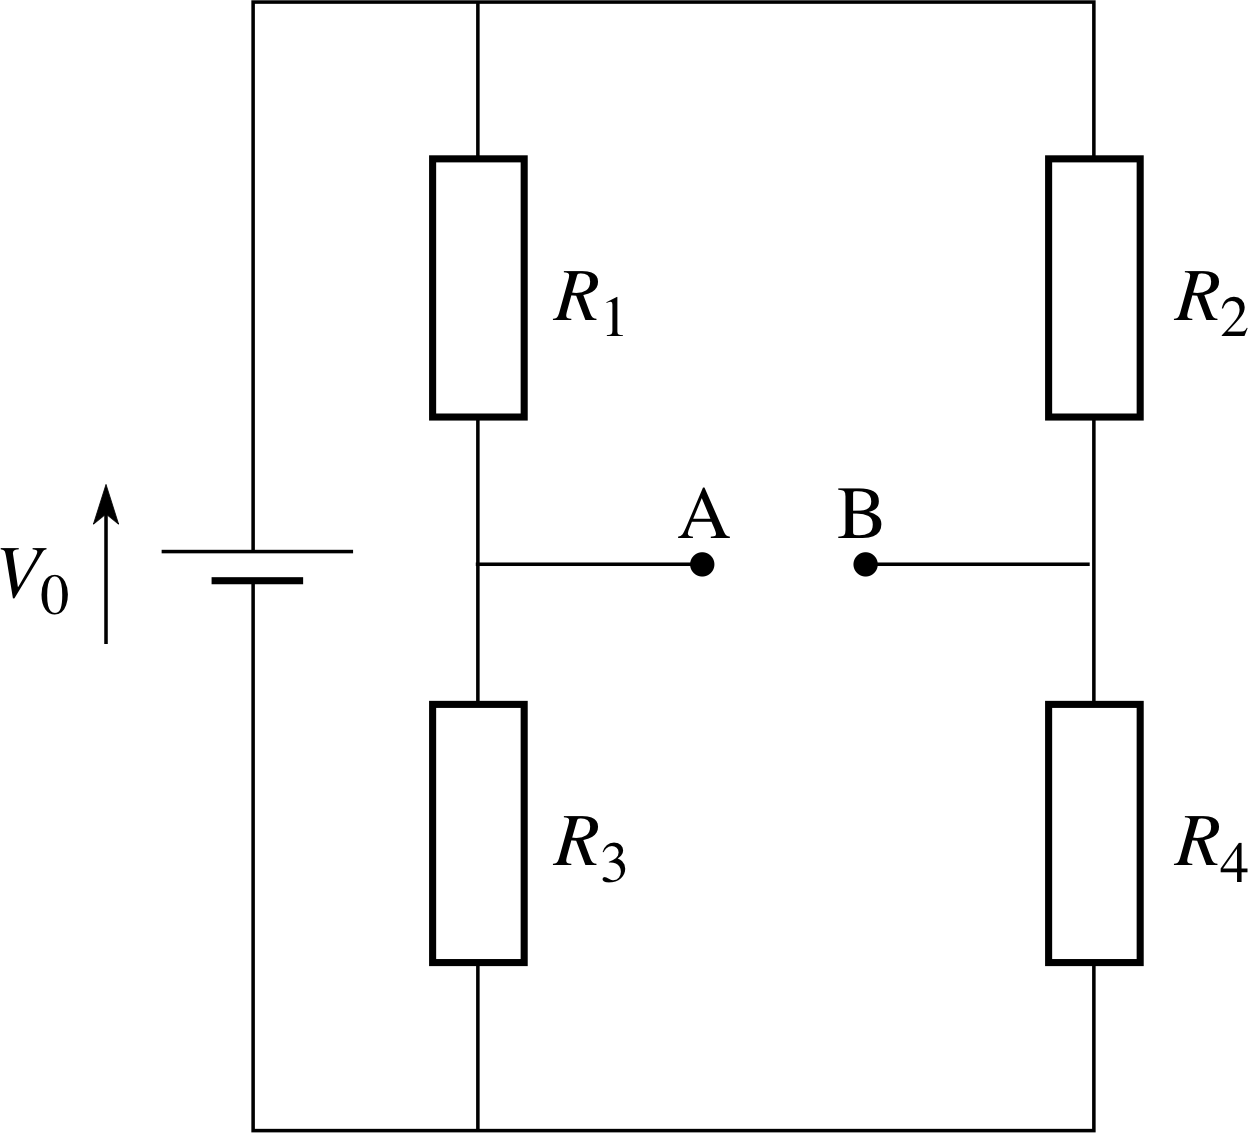 Pplato Flap Phys 41 Dc Circuits And Currents In This Simple Circuit The Two Resistors R1 R2 Represent Ordinary Figure